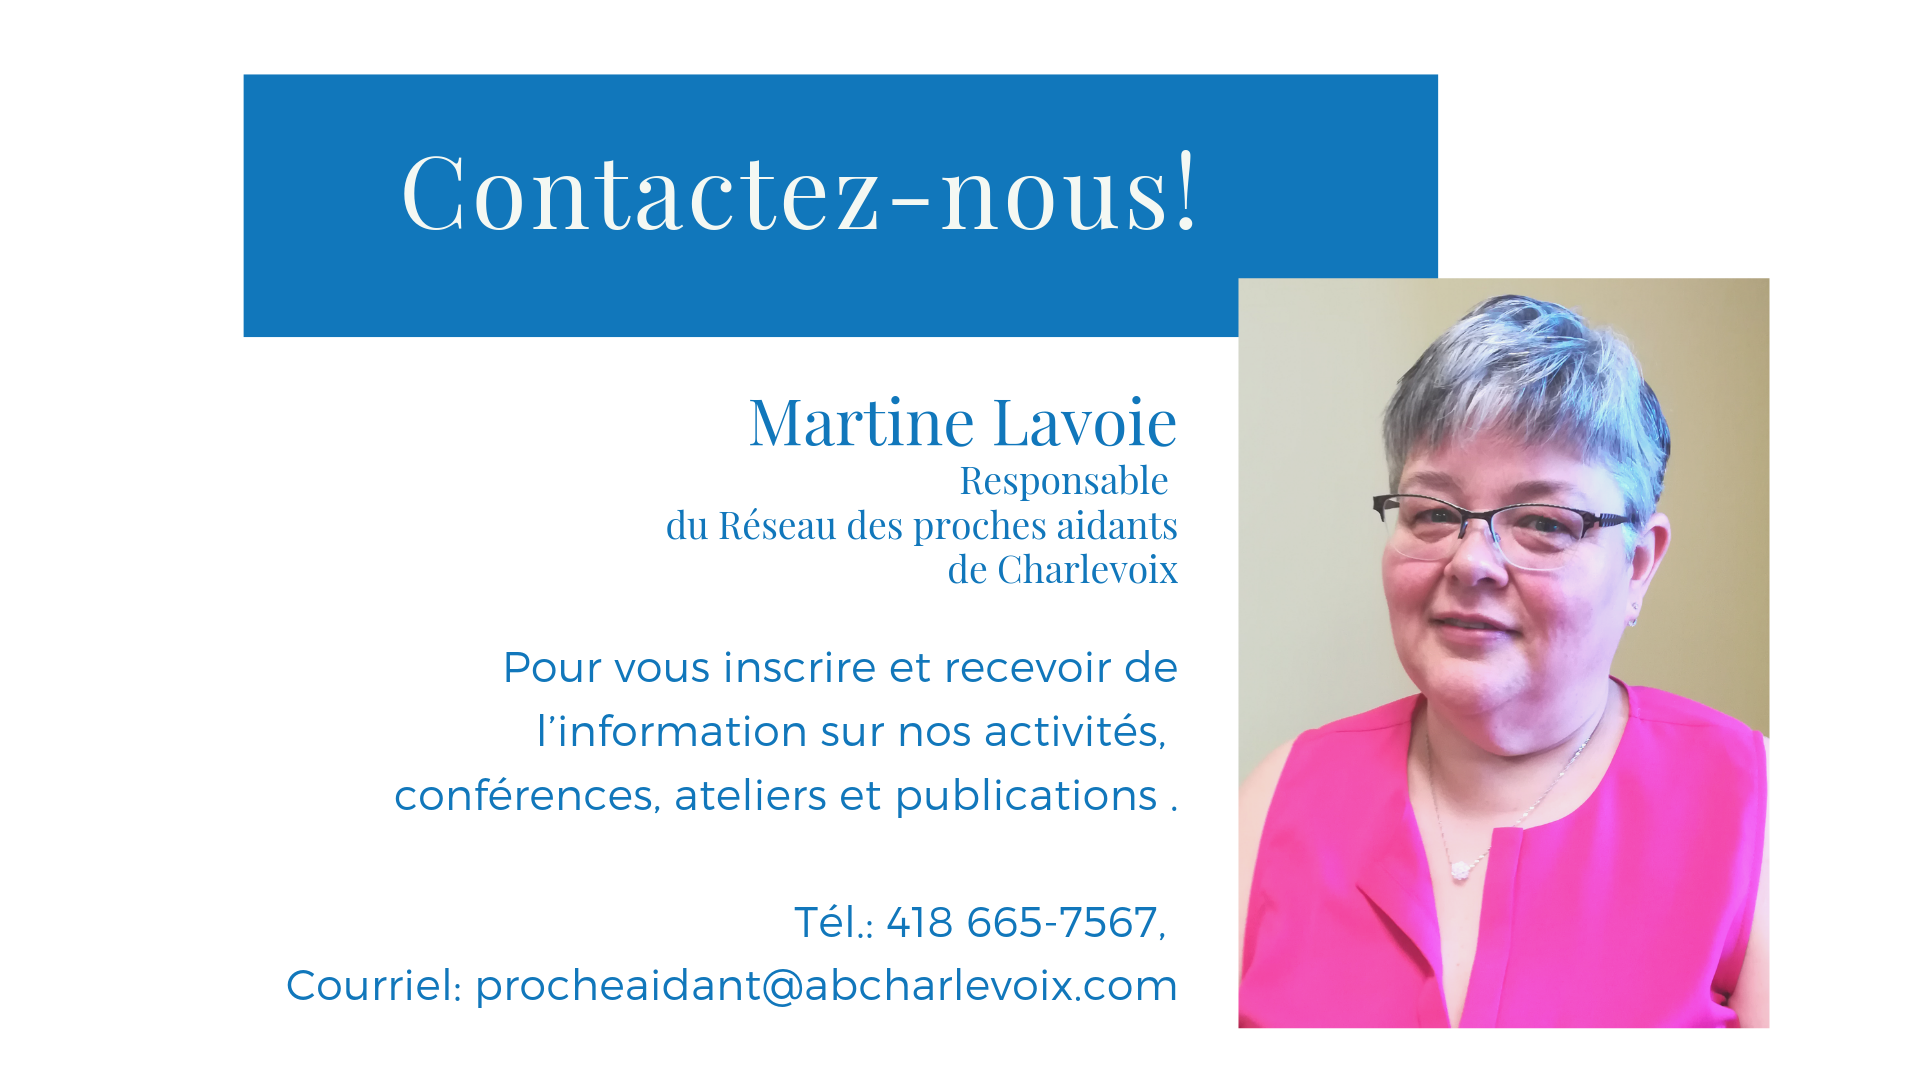 36 proches aidants martine lavoie information conference atelier